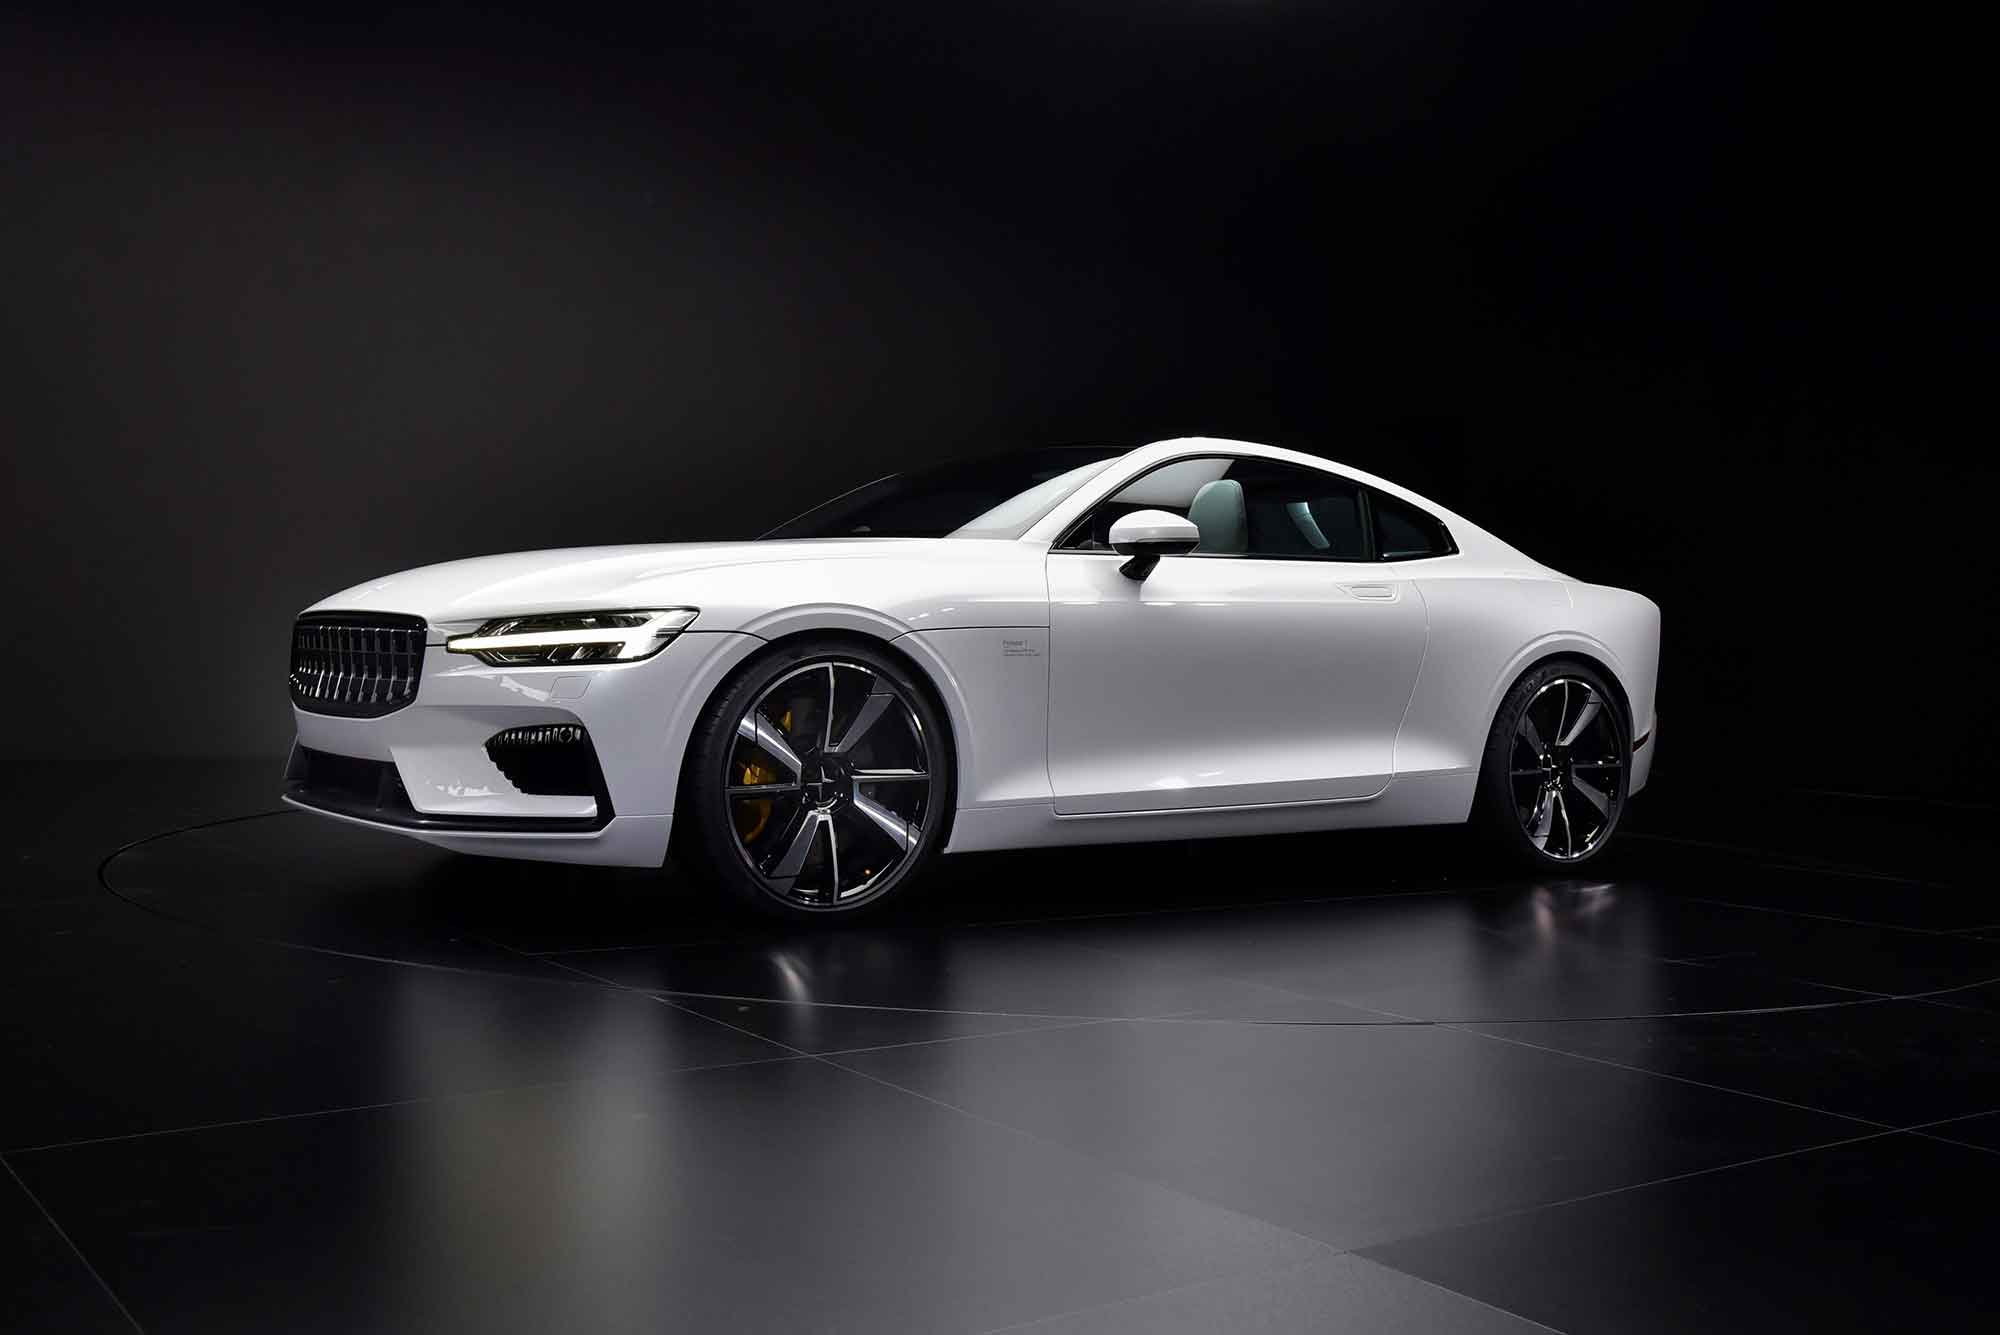 29 A Volvo To Go Electric By 2019 Engine